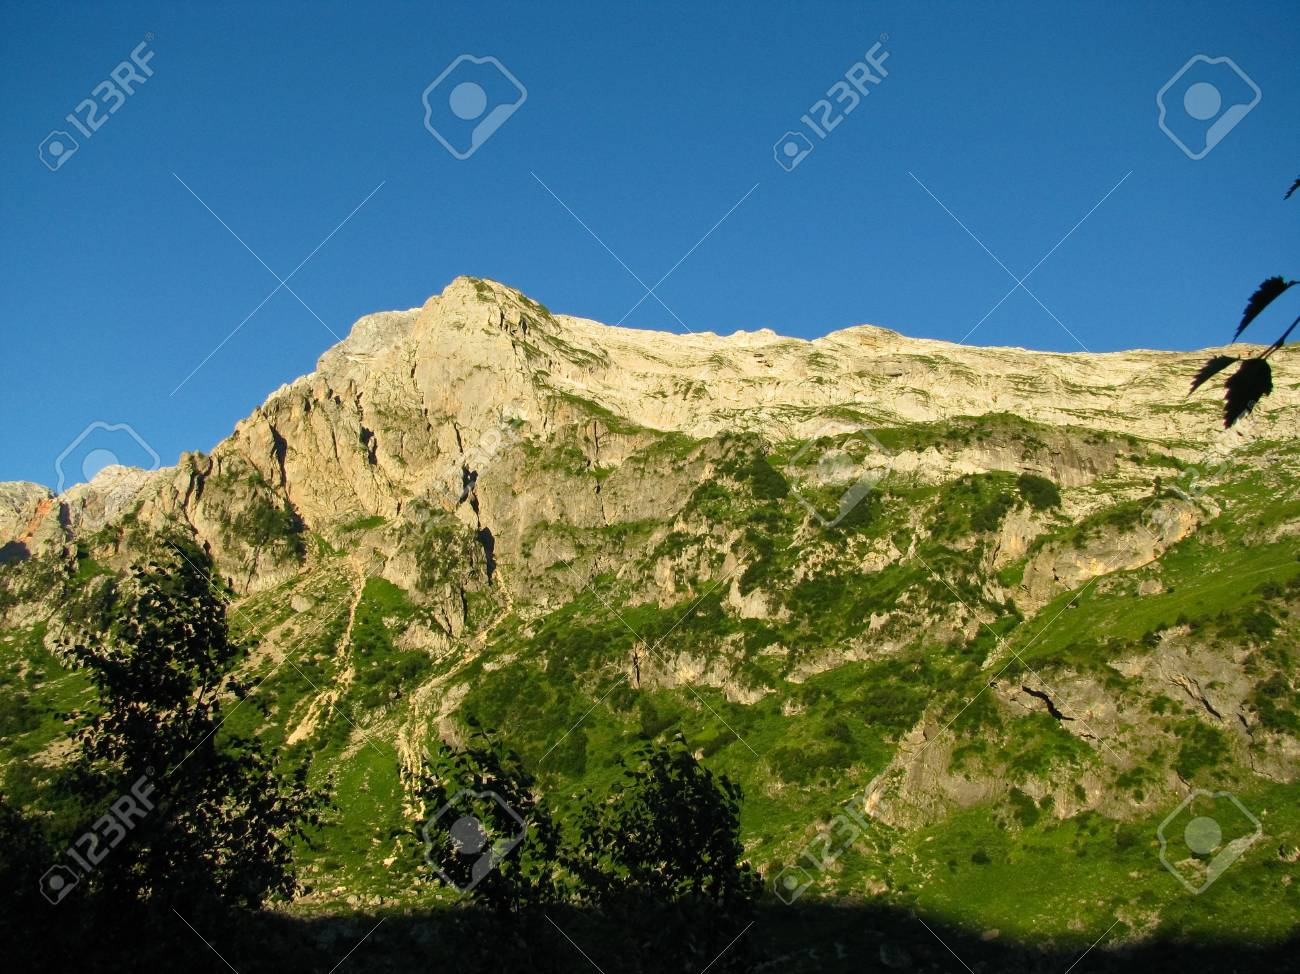 The magnificent mountain scenery of the Caucasus Nature Reserve Stock Photo - 12794933